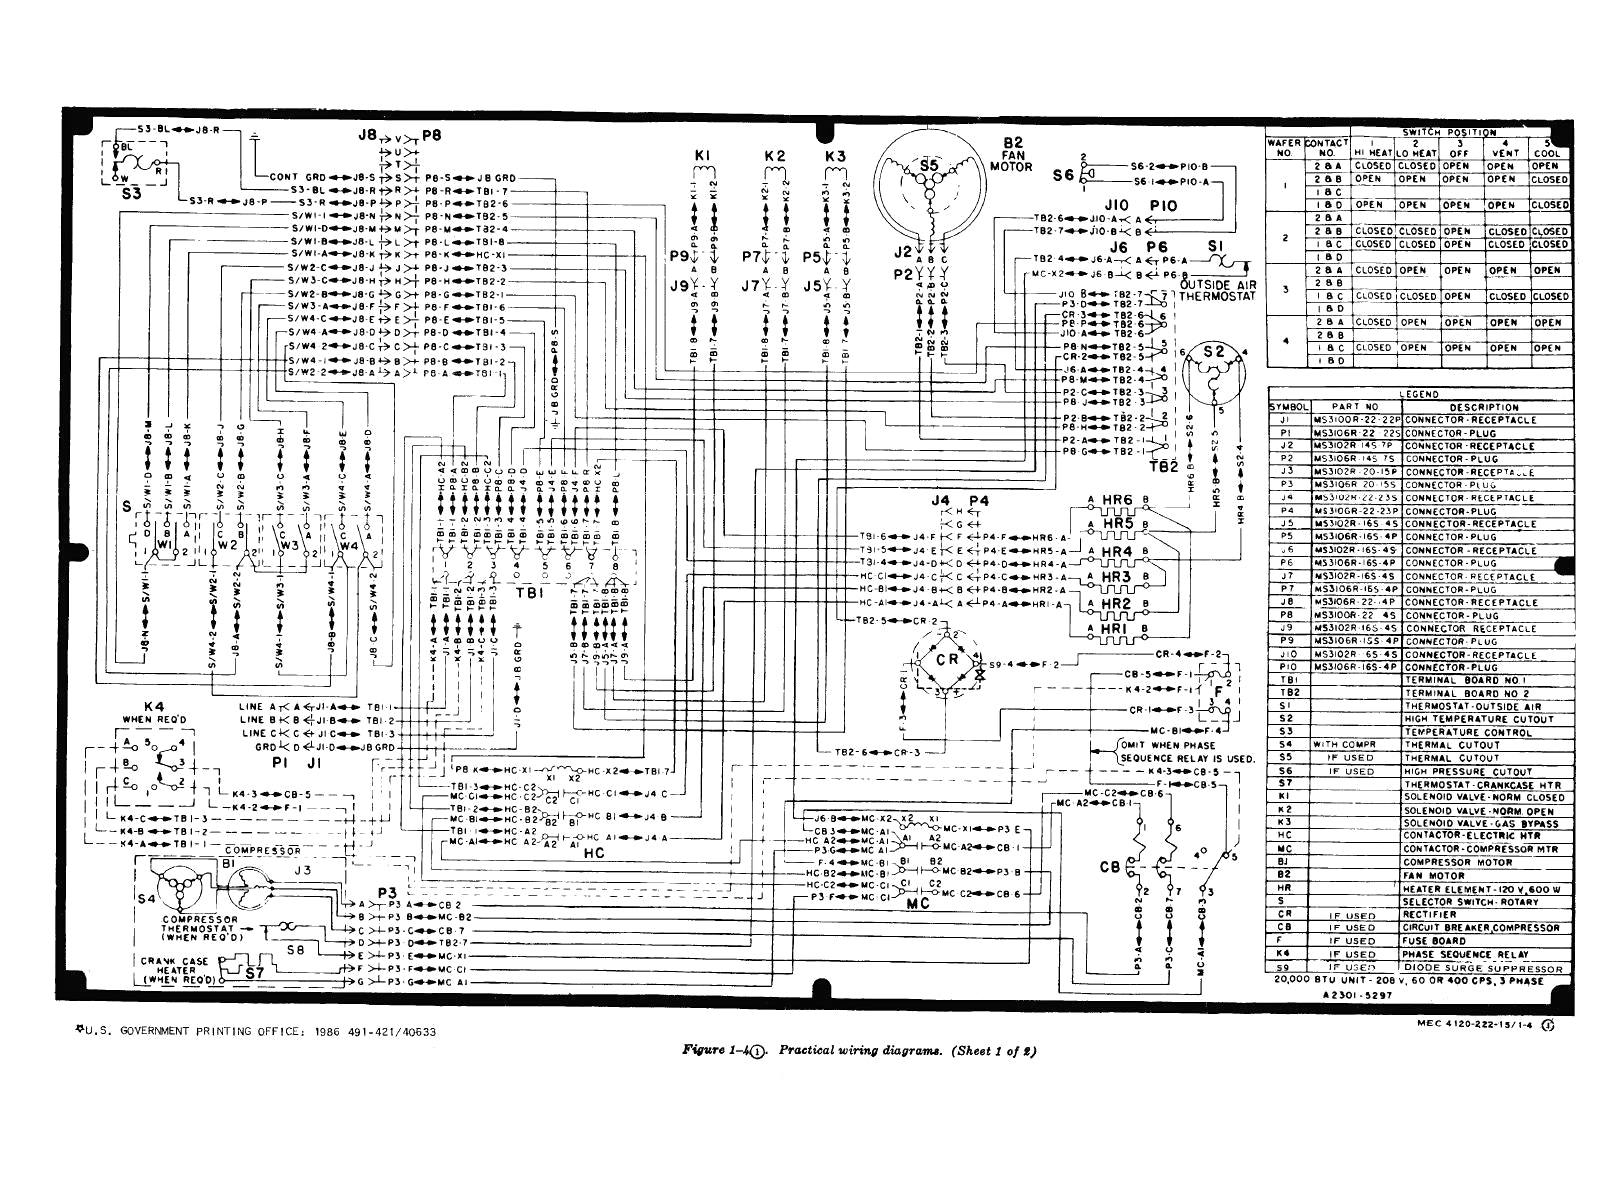 trane ycd 060 wiring diagram Download-Trane Air Conditioner Wiring Diagram With Radiantmoons Me Inside 17-q